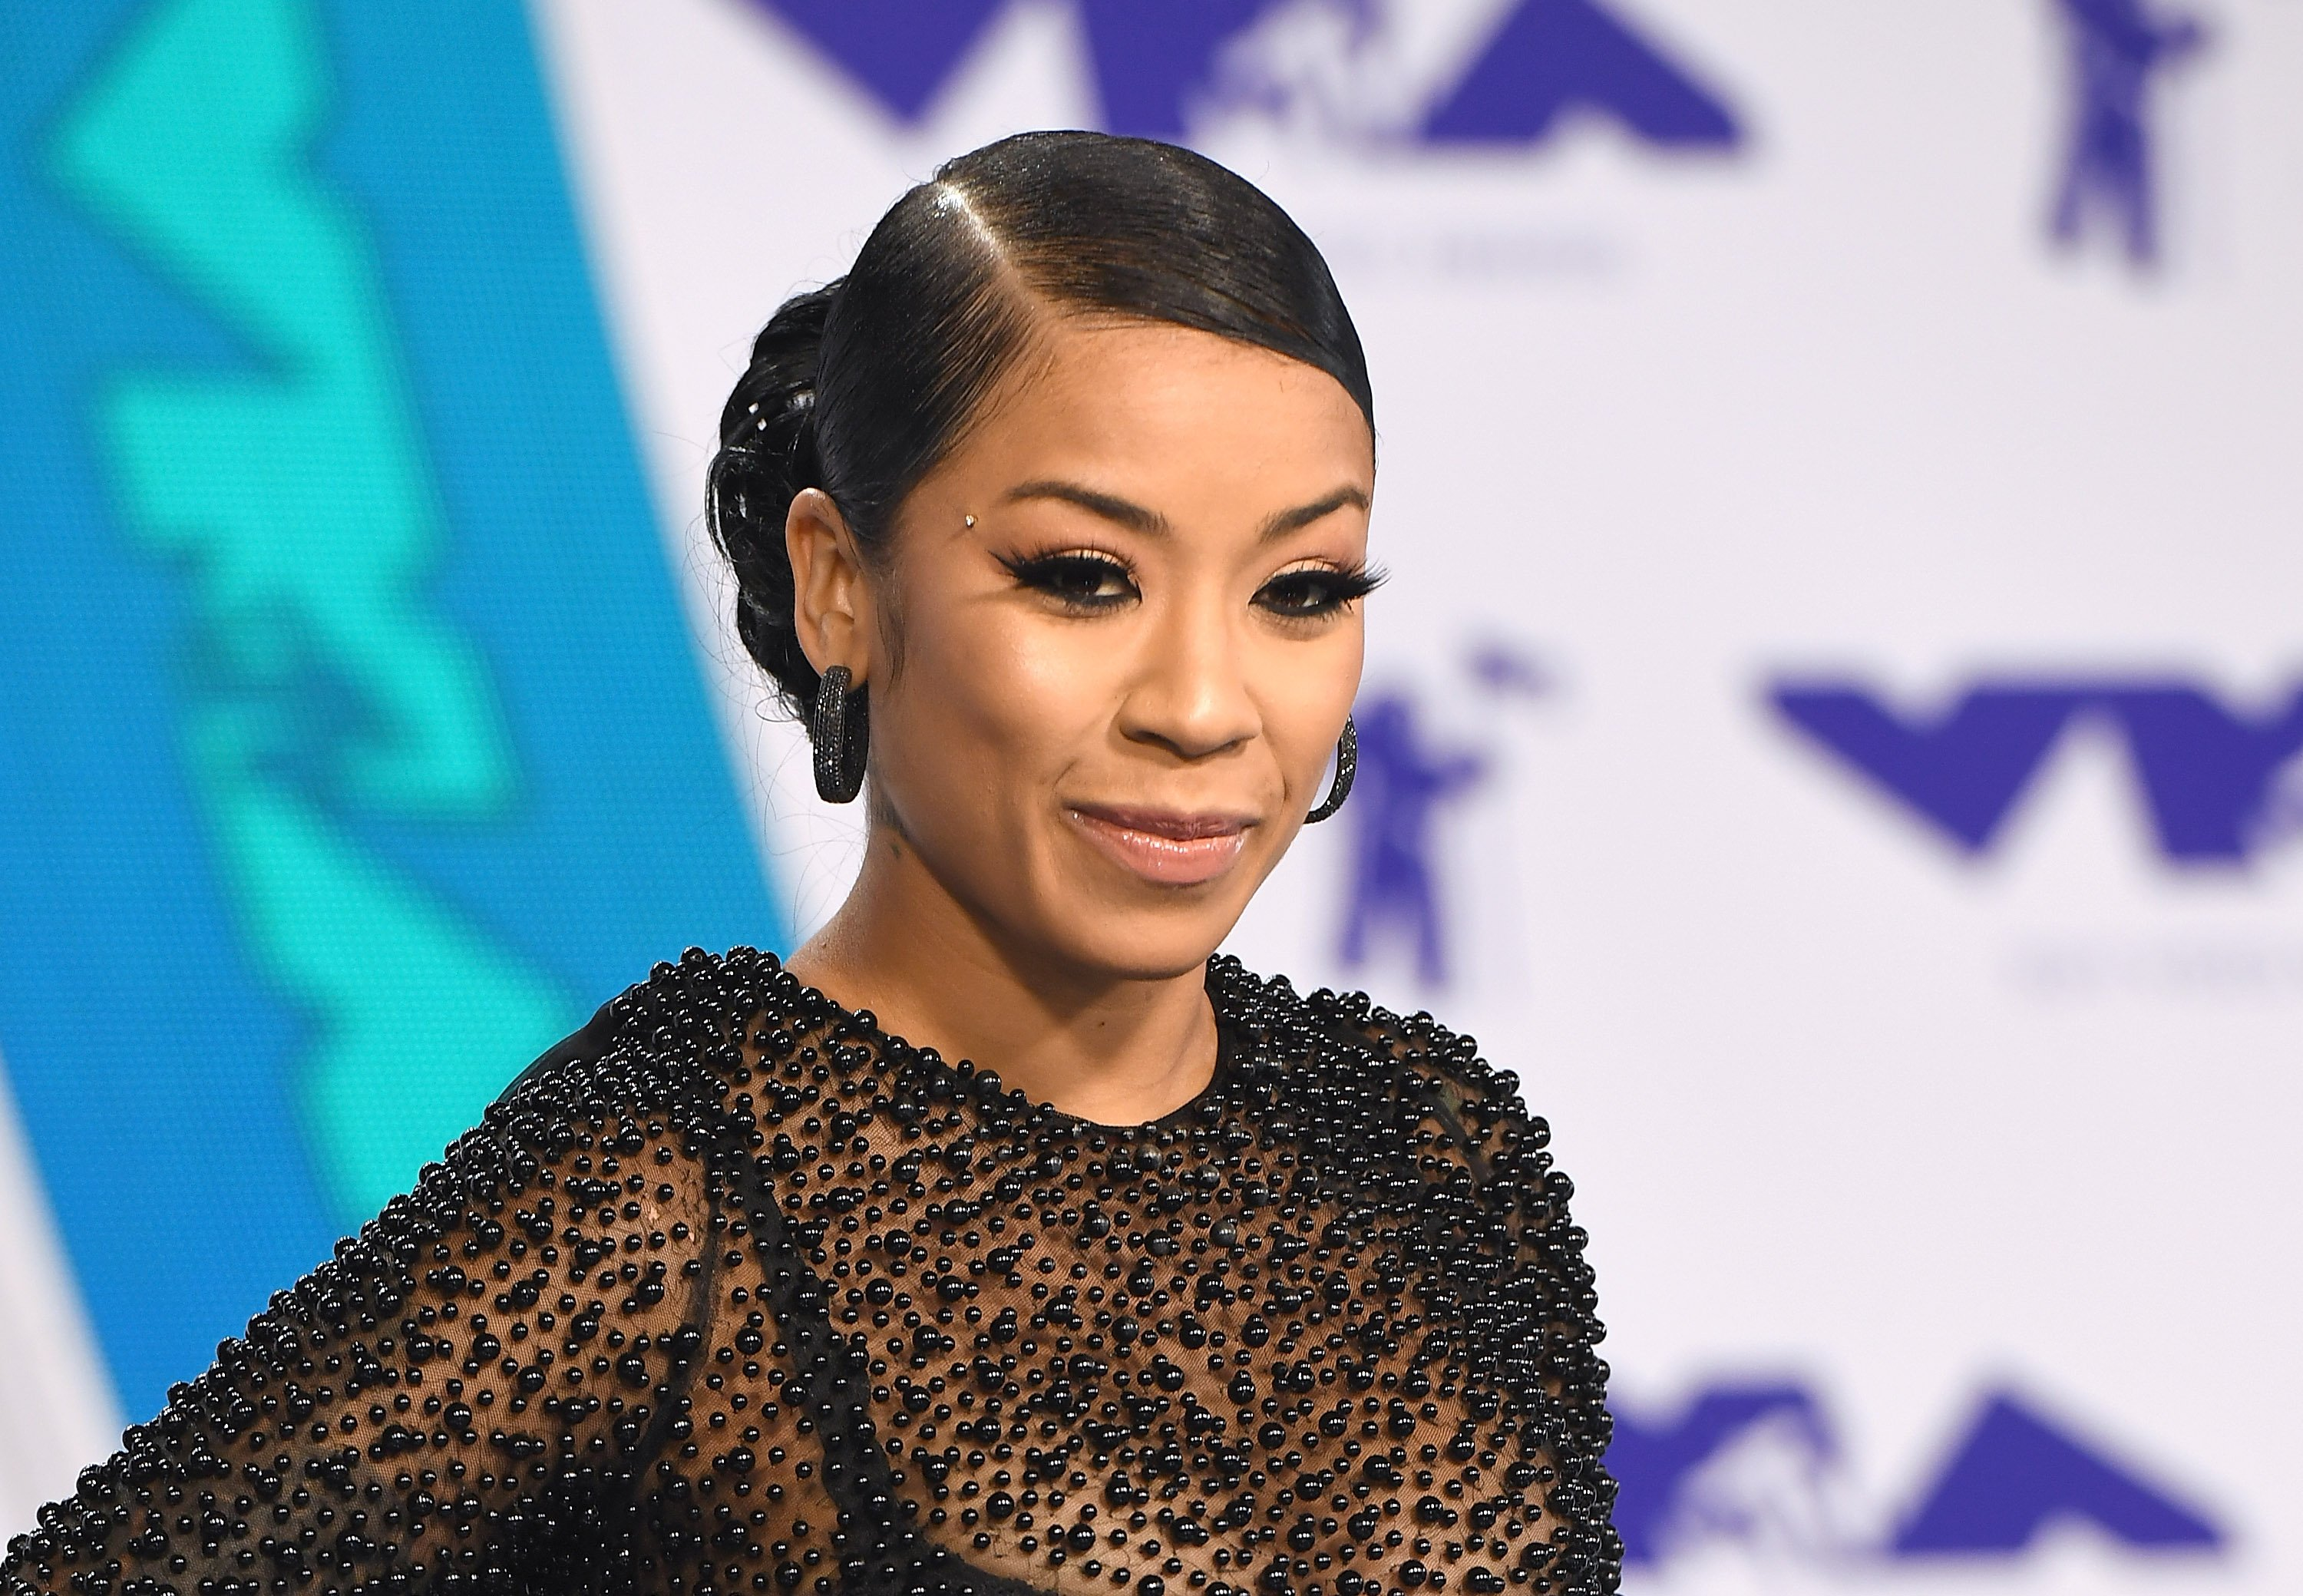 Keyshia Cole at the 2017 MTV Video Music Awards at The Forum on August 27, 2017 in Inglewood, California.|Source: Getty Images